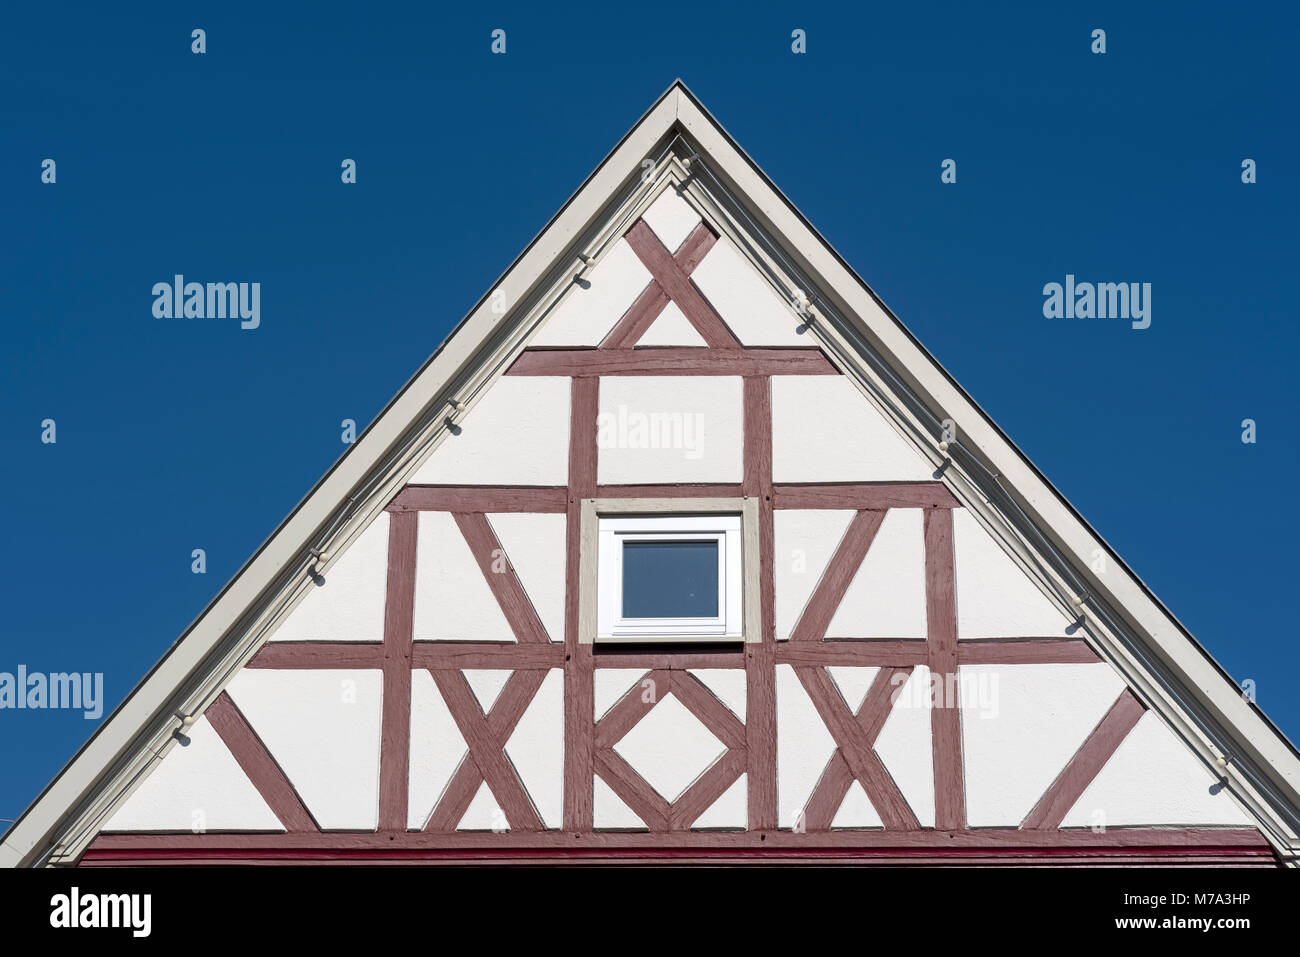 Gable of half-timbered house, Southern Germany - Stock Image